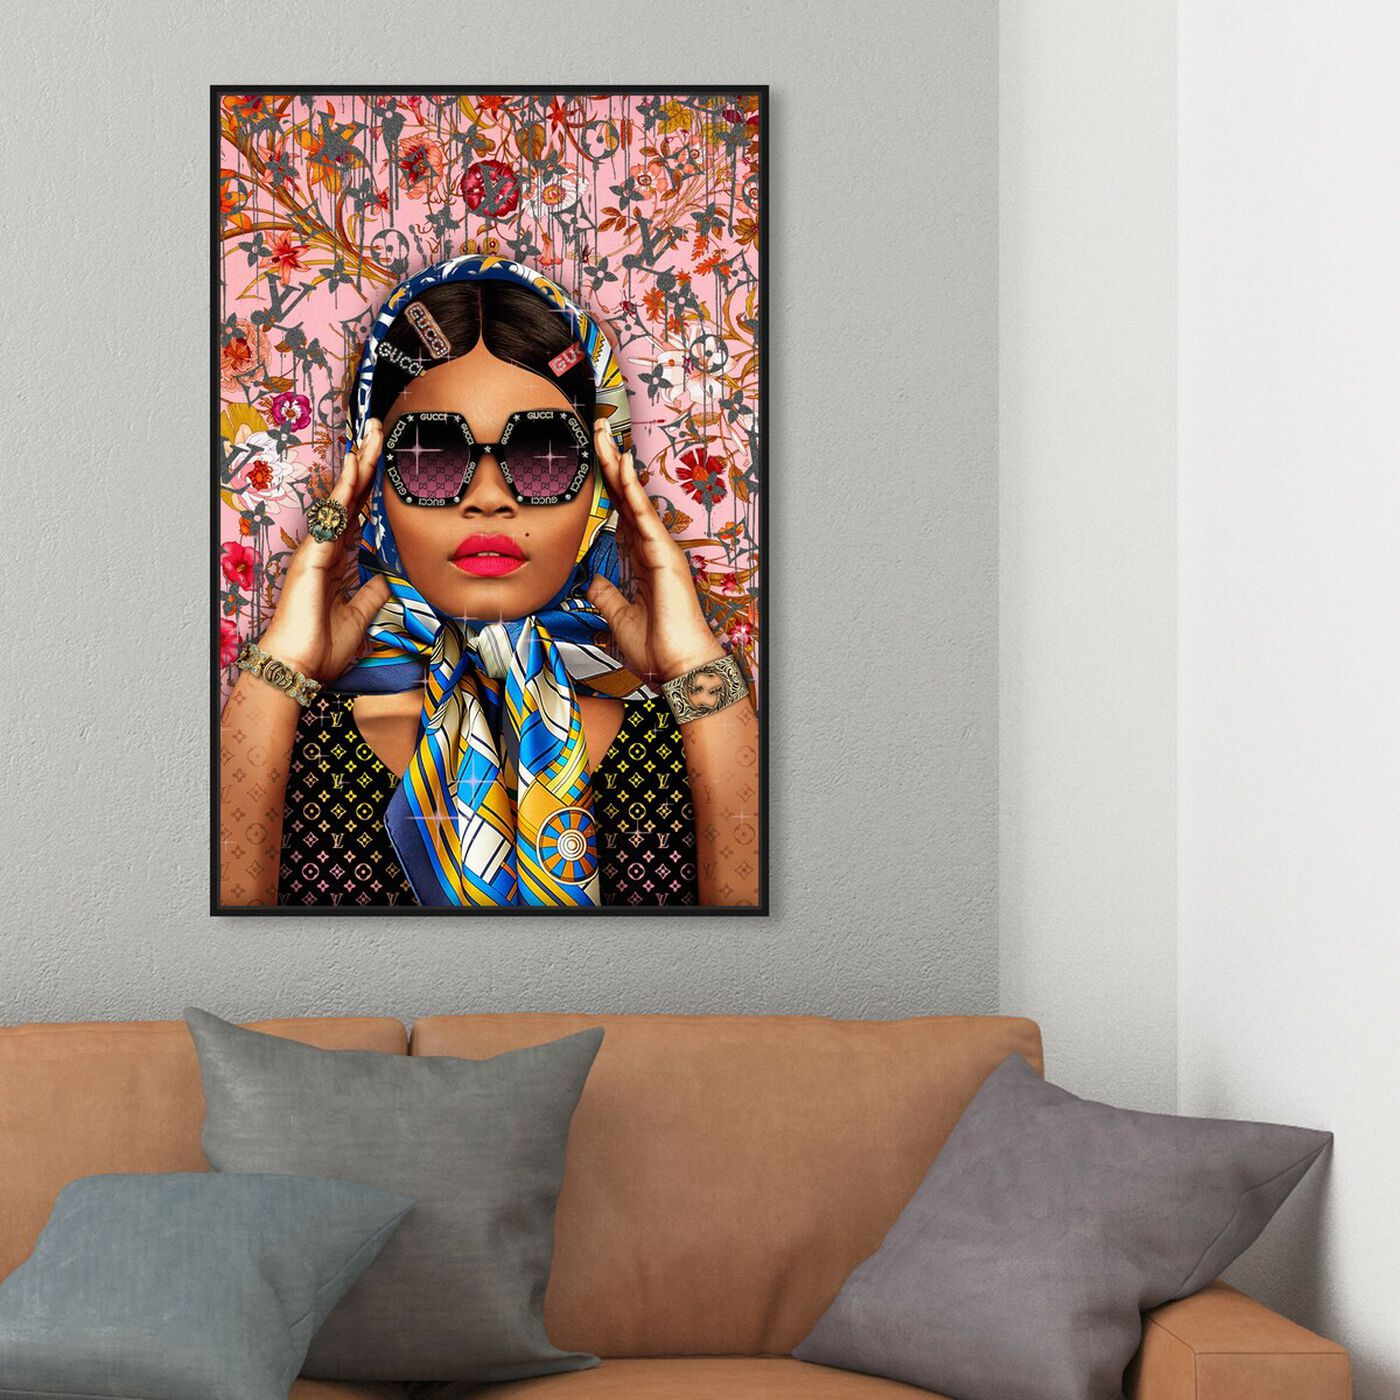 Hanging view of Snap a picture featuring fashion and glam and portraits art.